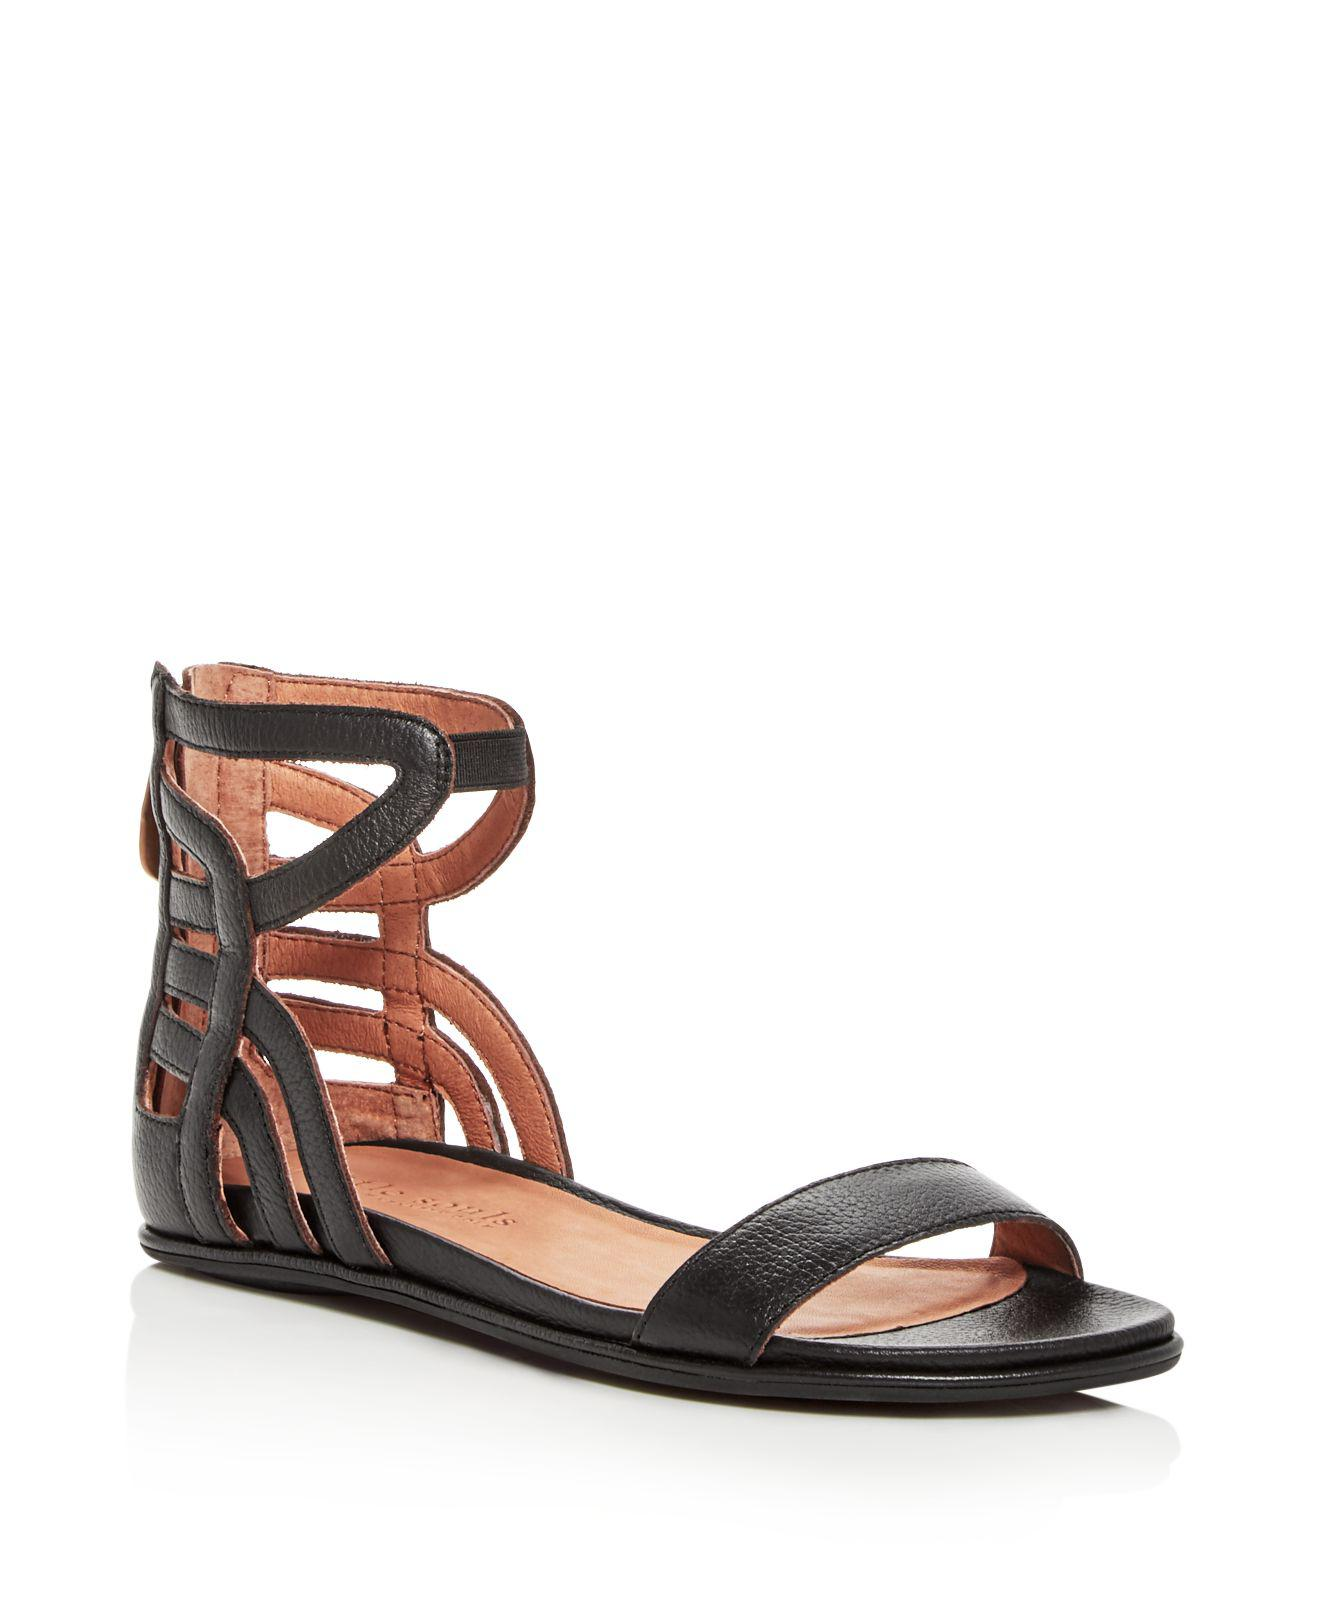 Kenneth Cole Gentle Souls Women's Larisa Snake Embossed Leather Ankle Strap Demi Wedge Sandals 0Tkc1